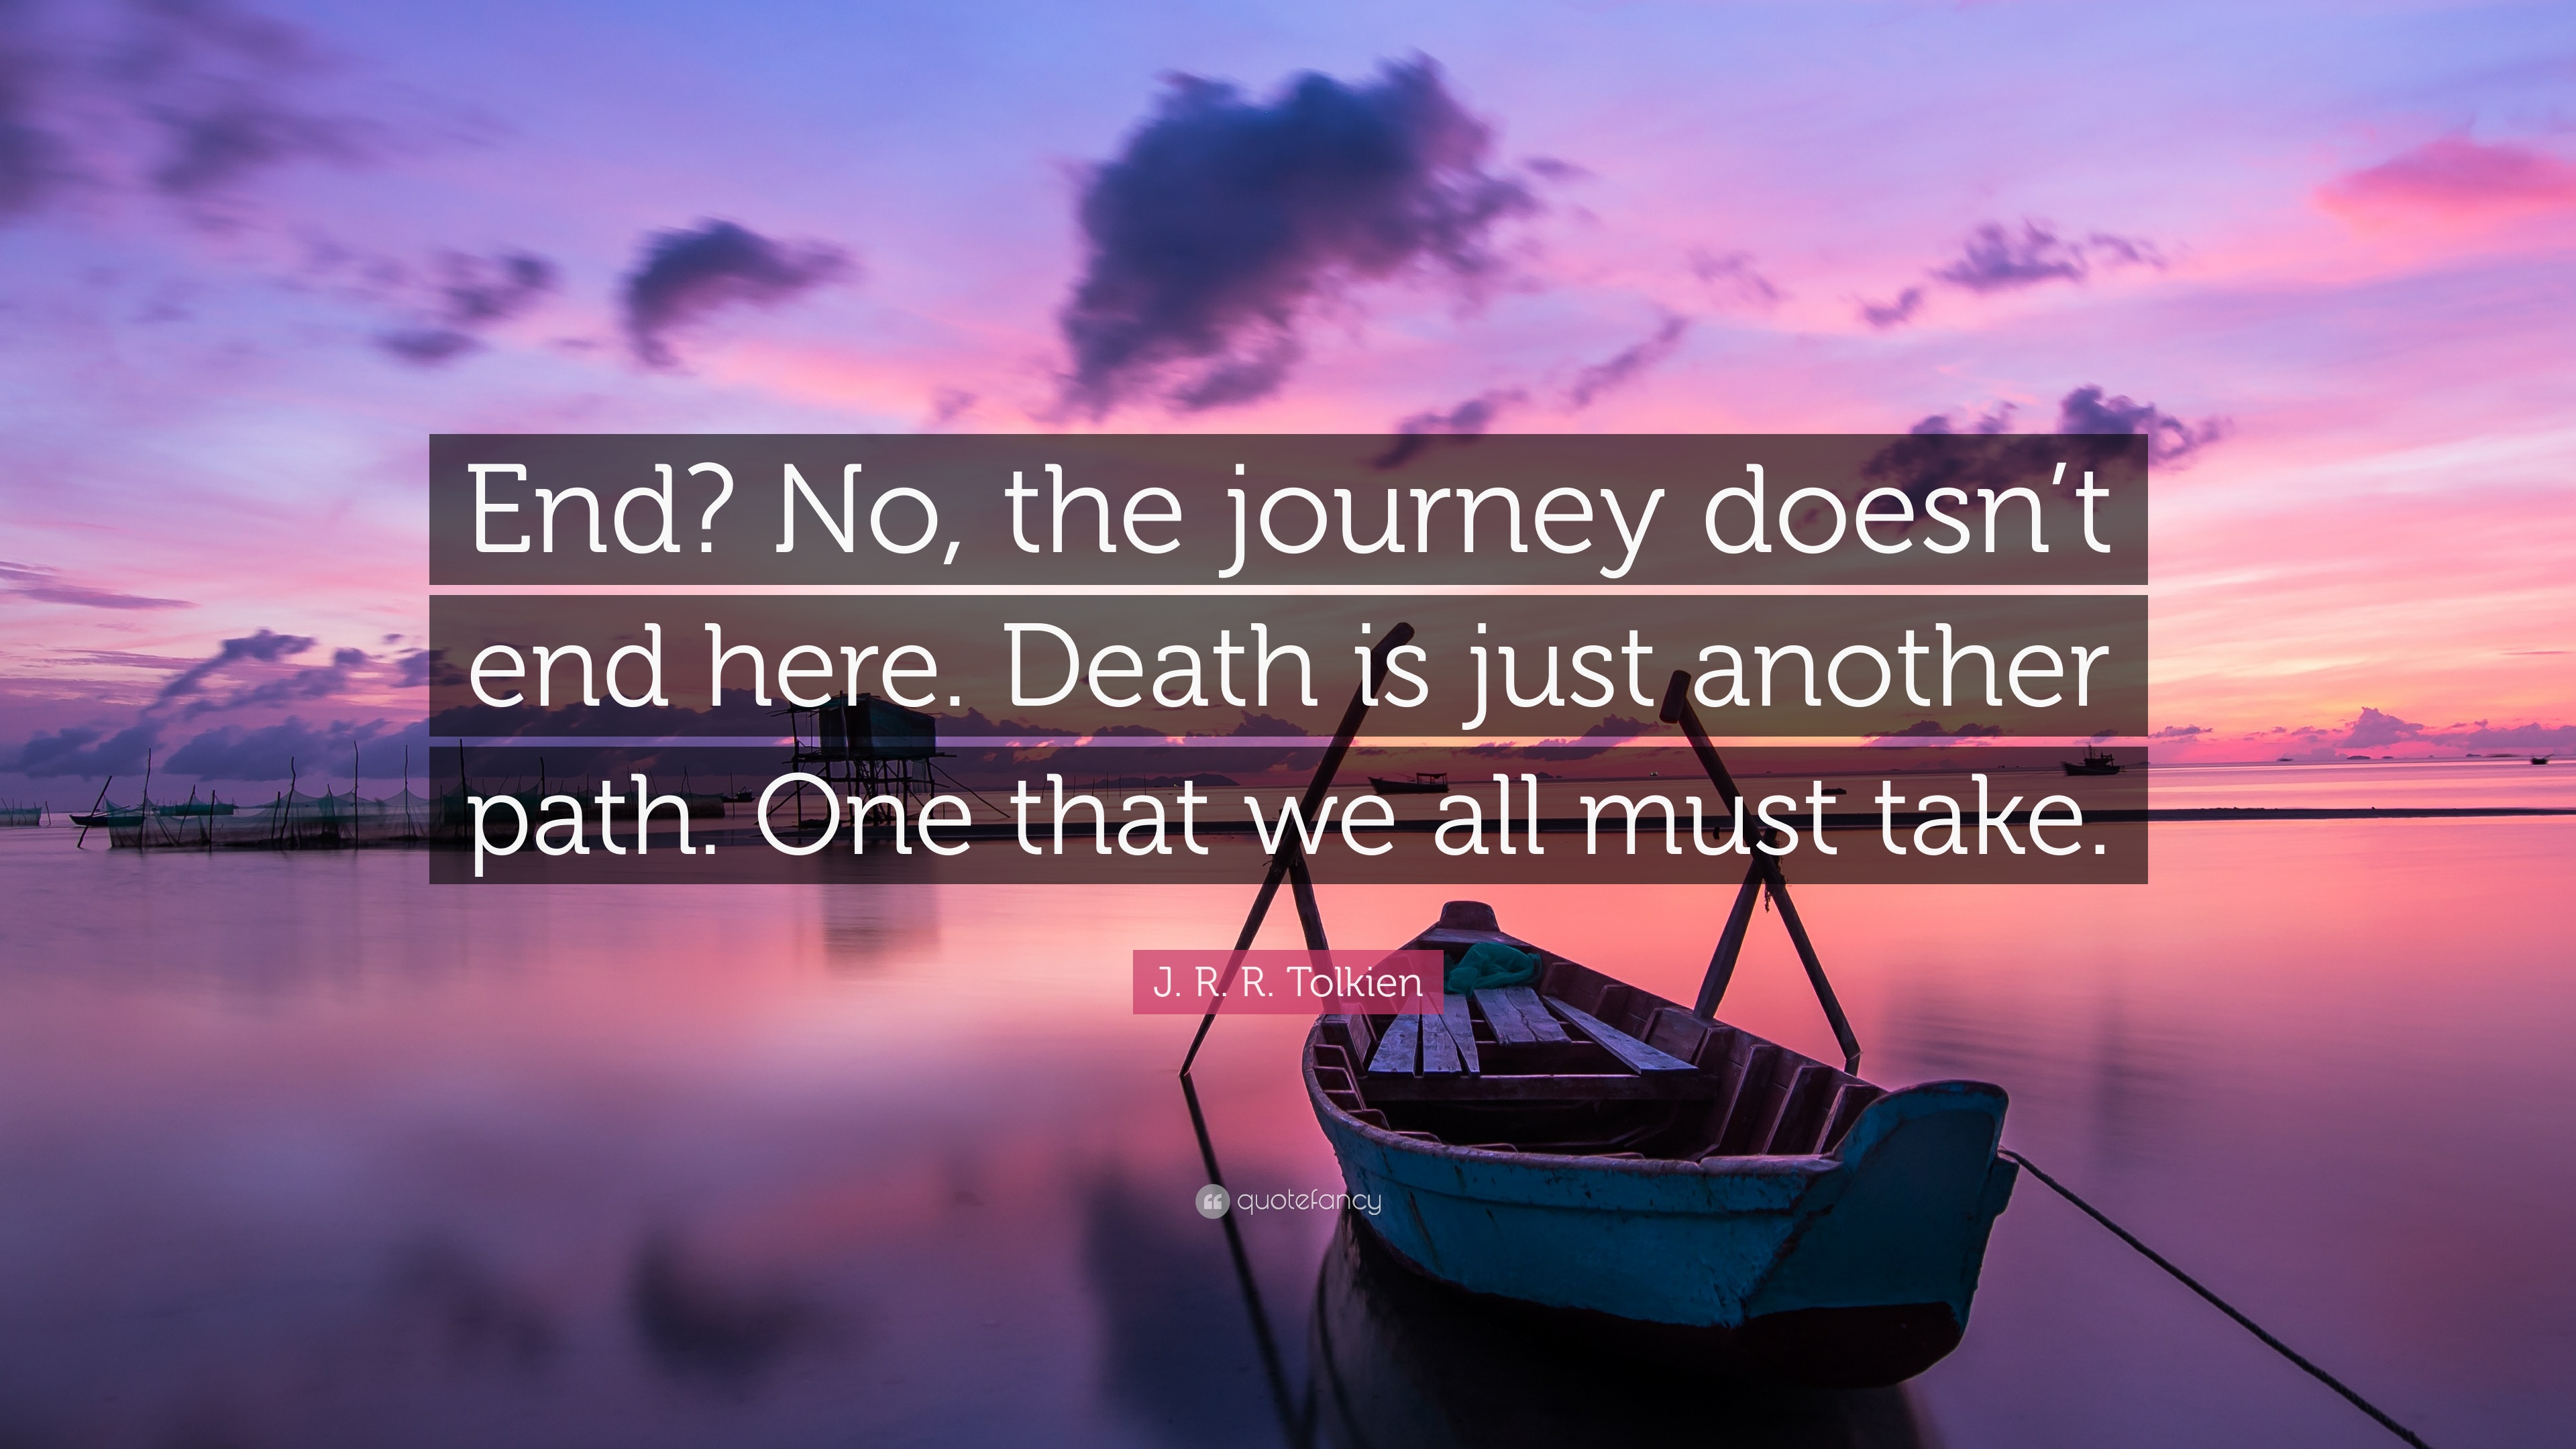 J R R Tolkien Quote End No The Journey Doesnt End Here